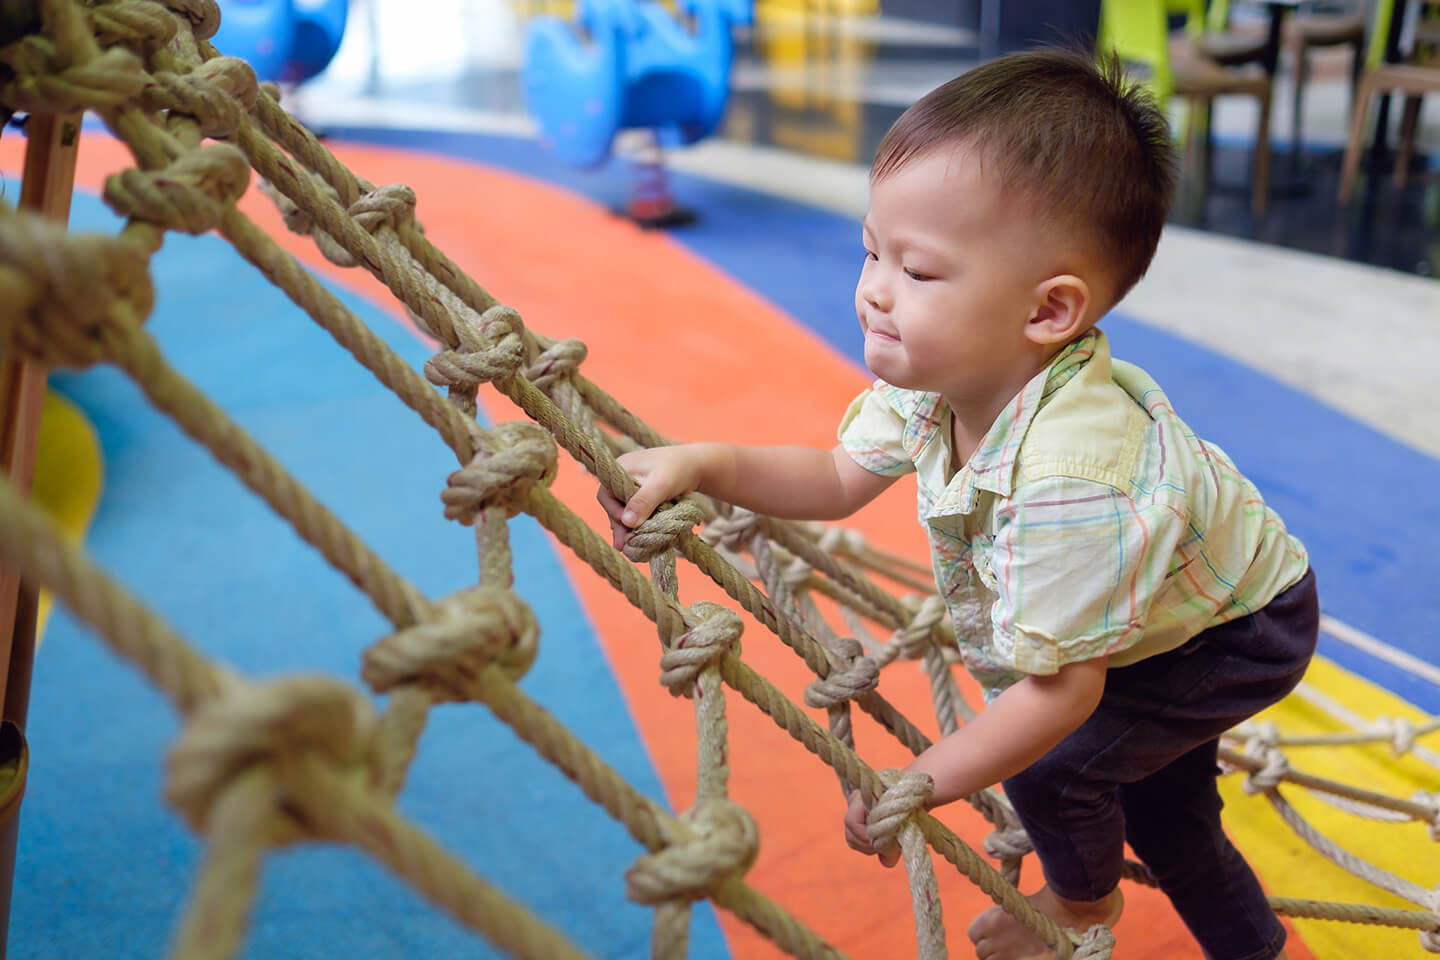 Young boy climbing up a cargo net at a childcare center in Campbelltown, Liverpool Sydney